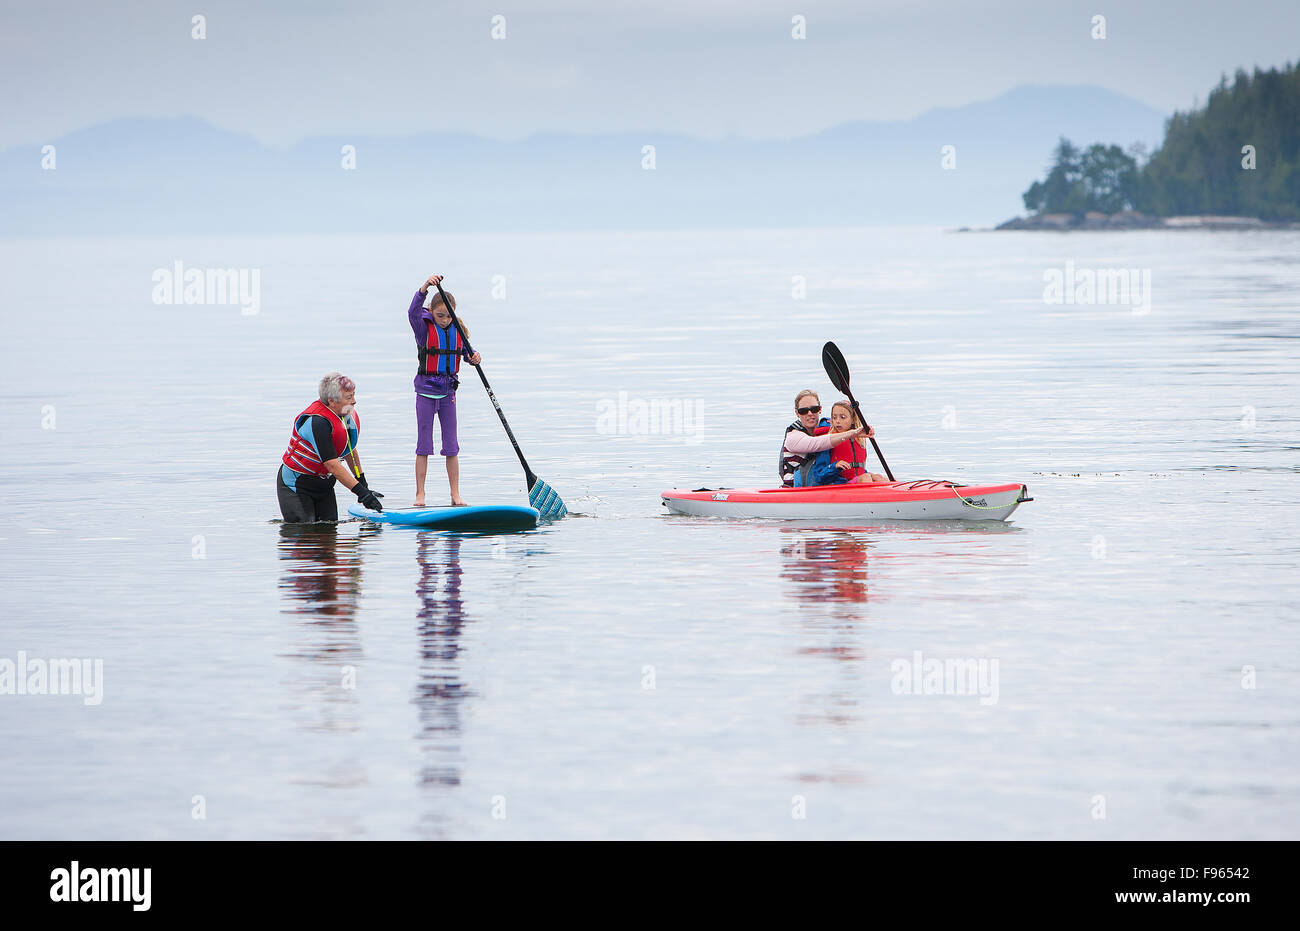 Three generations of women enjoy watersports at Stories Beach near Port Hardy. - Stock Image